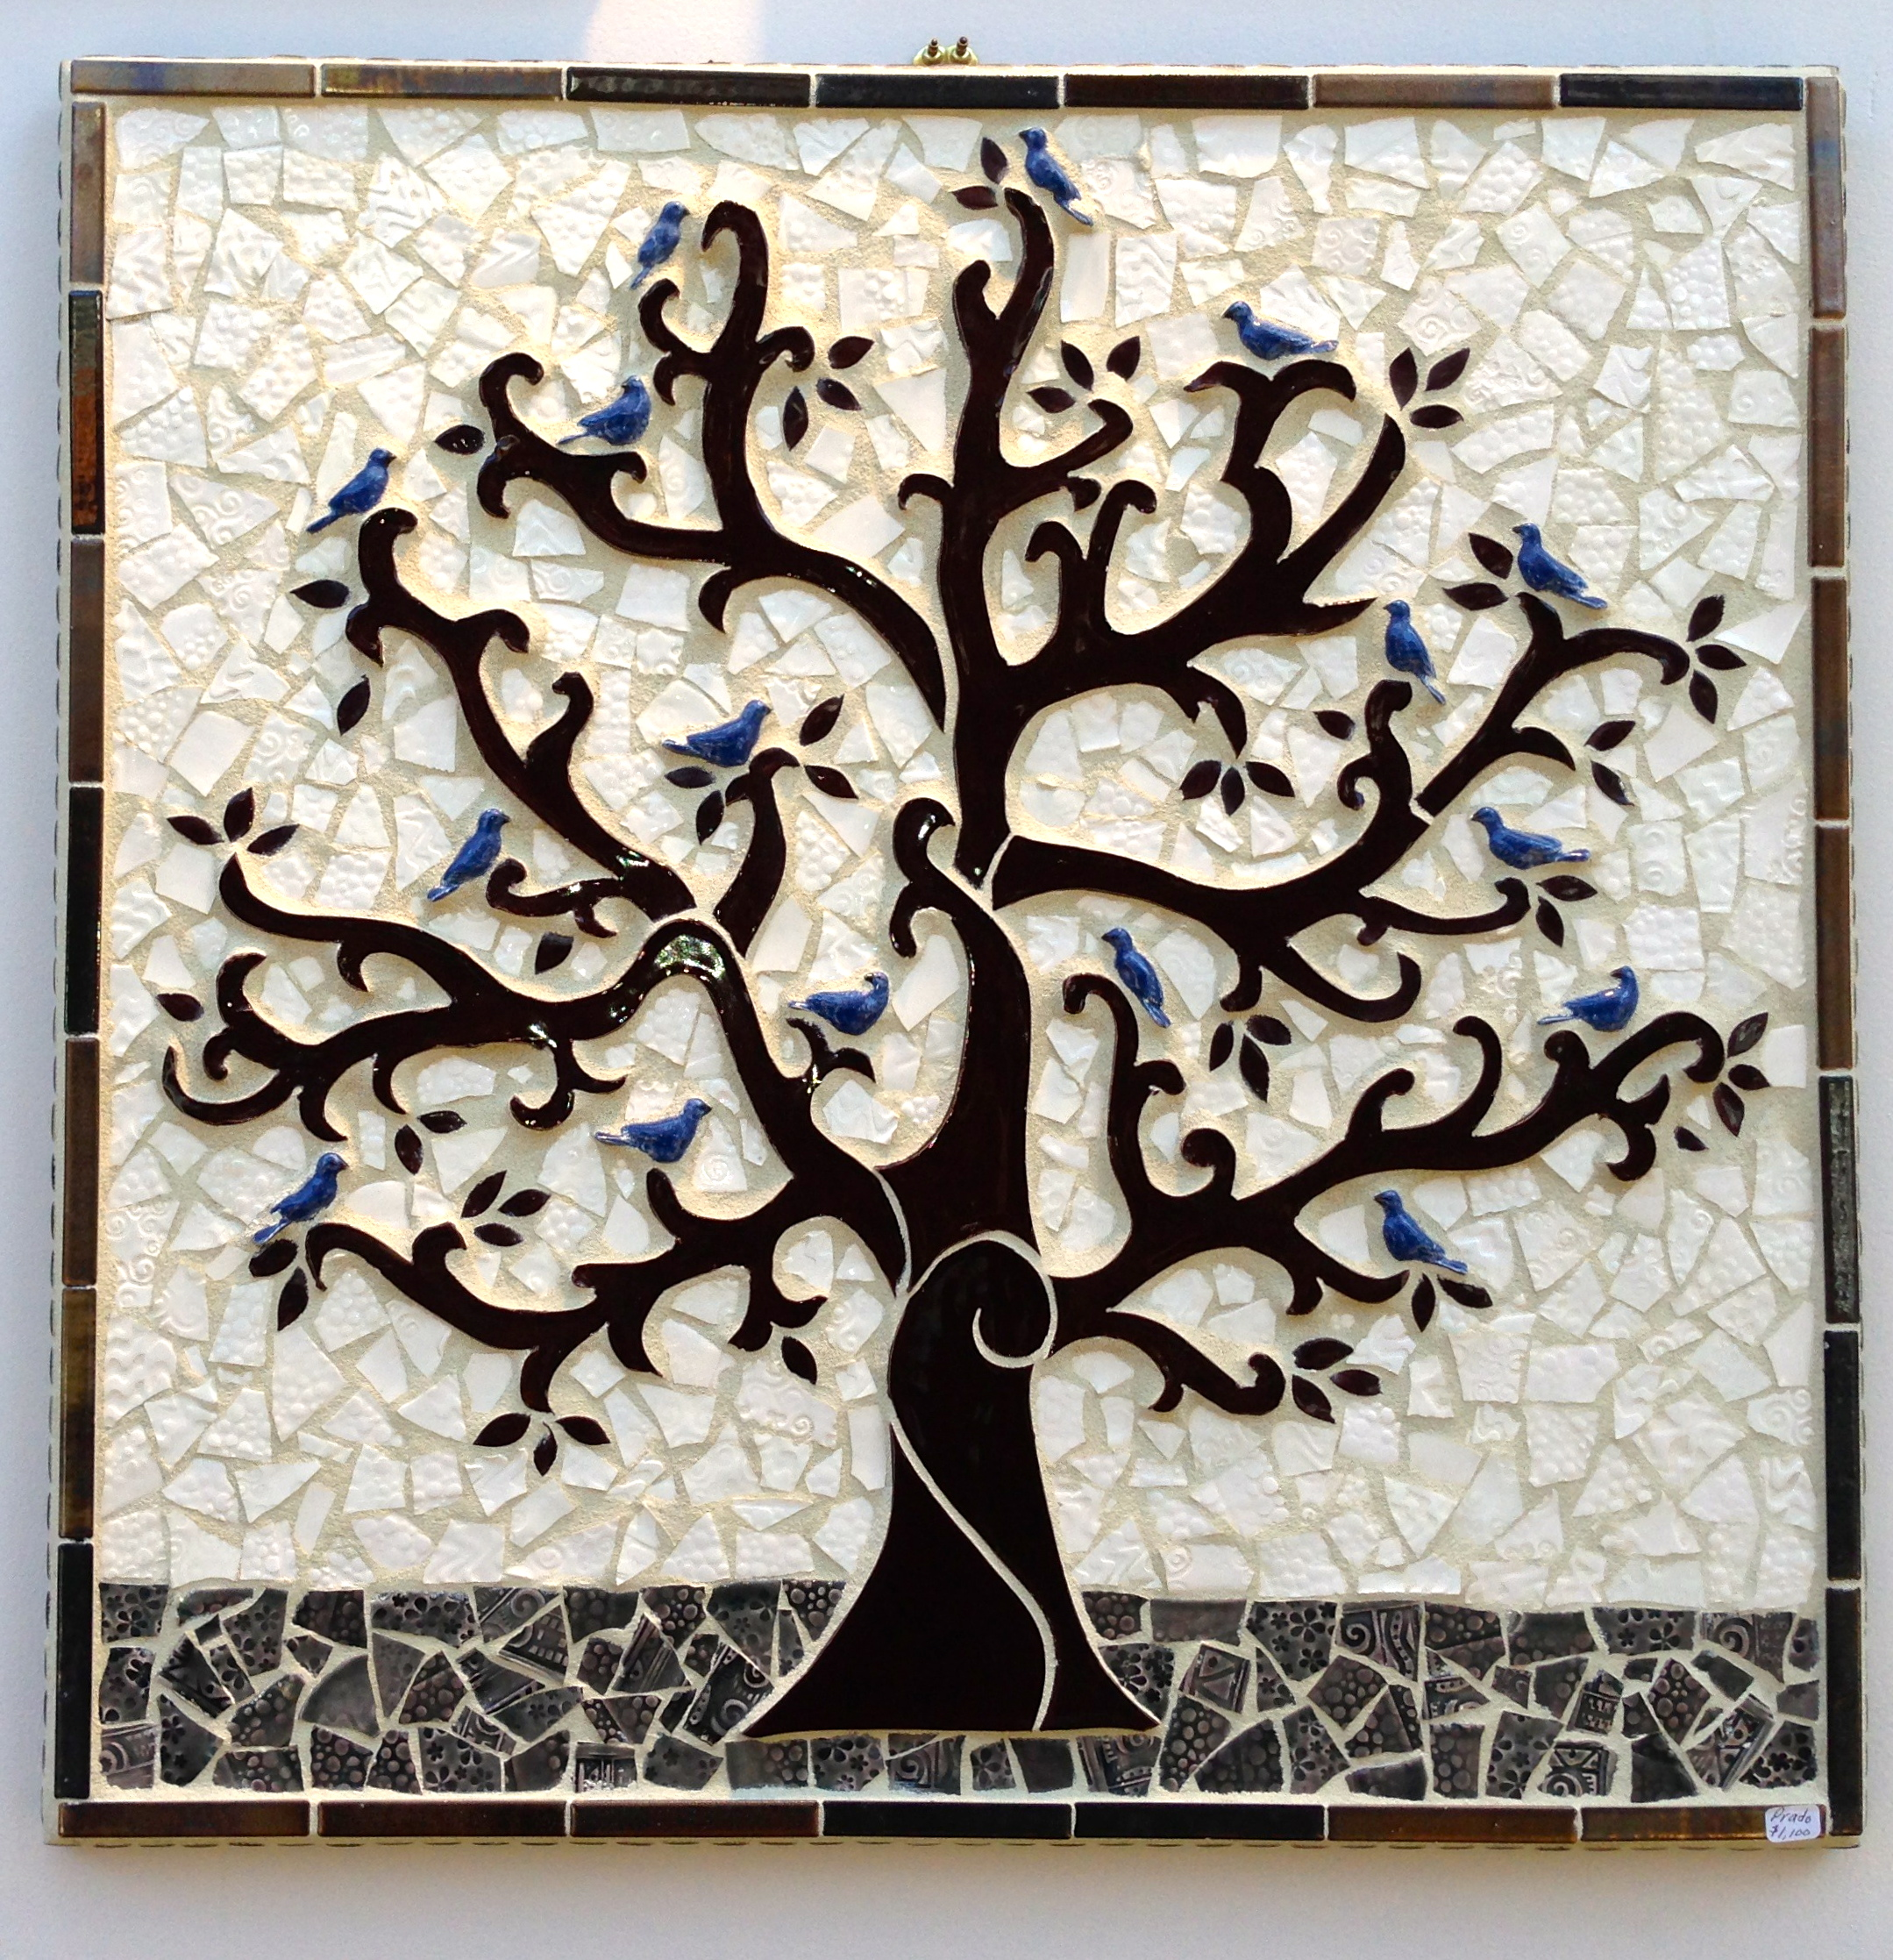 "Resting Place   25"" x 25"" features a resting flock of blue birds in a tree of life with richly textures background tiles framed in antique golden stone."